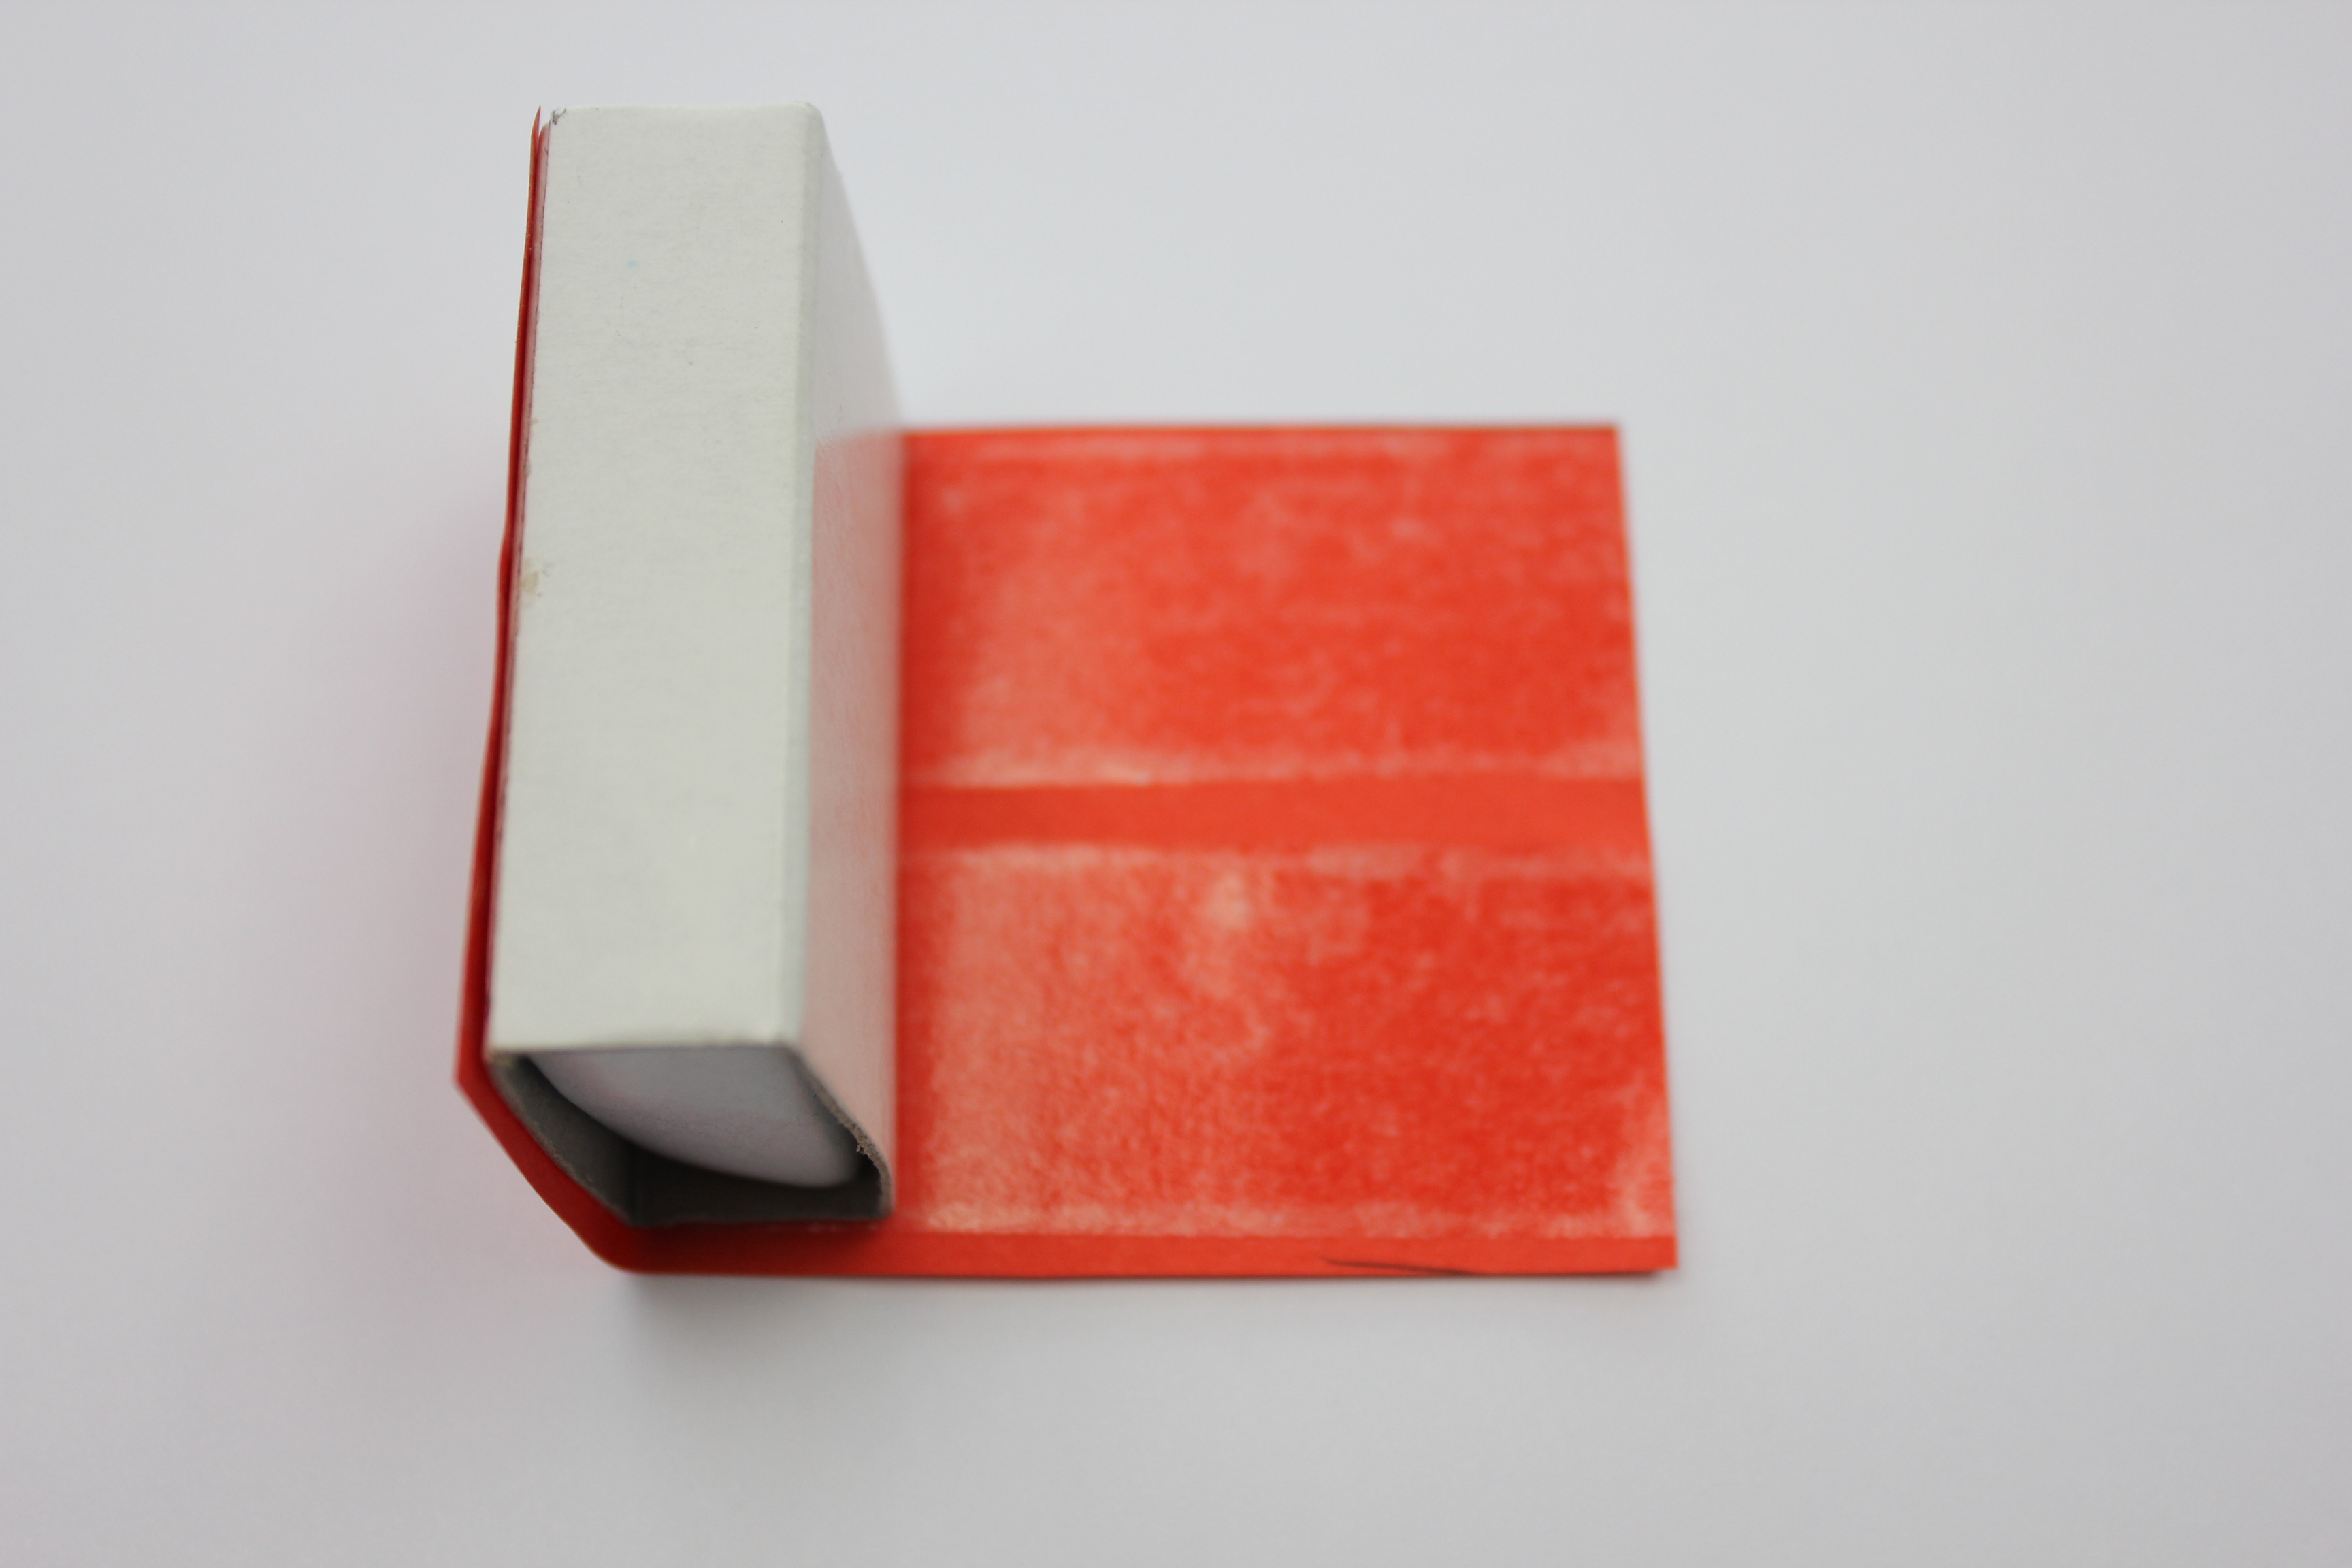 Align the red paper on the white box and stick it on, rolling it around the box covering all but the two smallest sides.